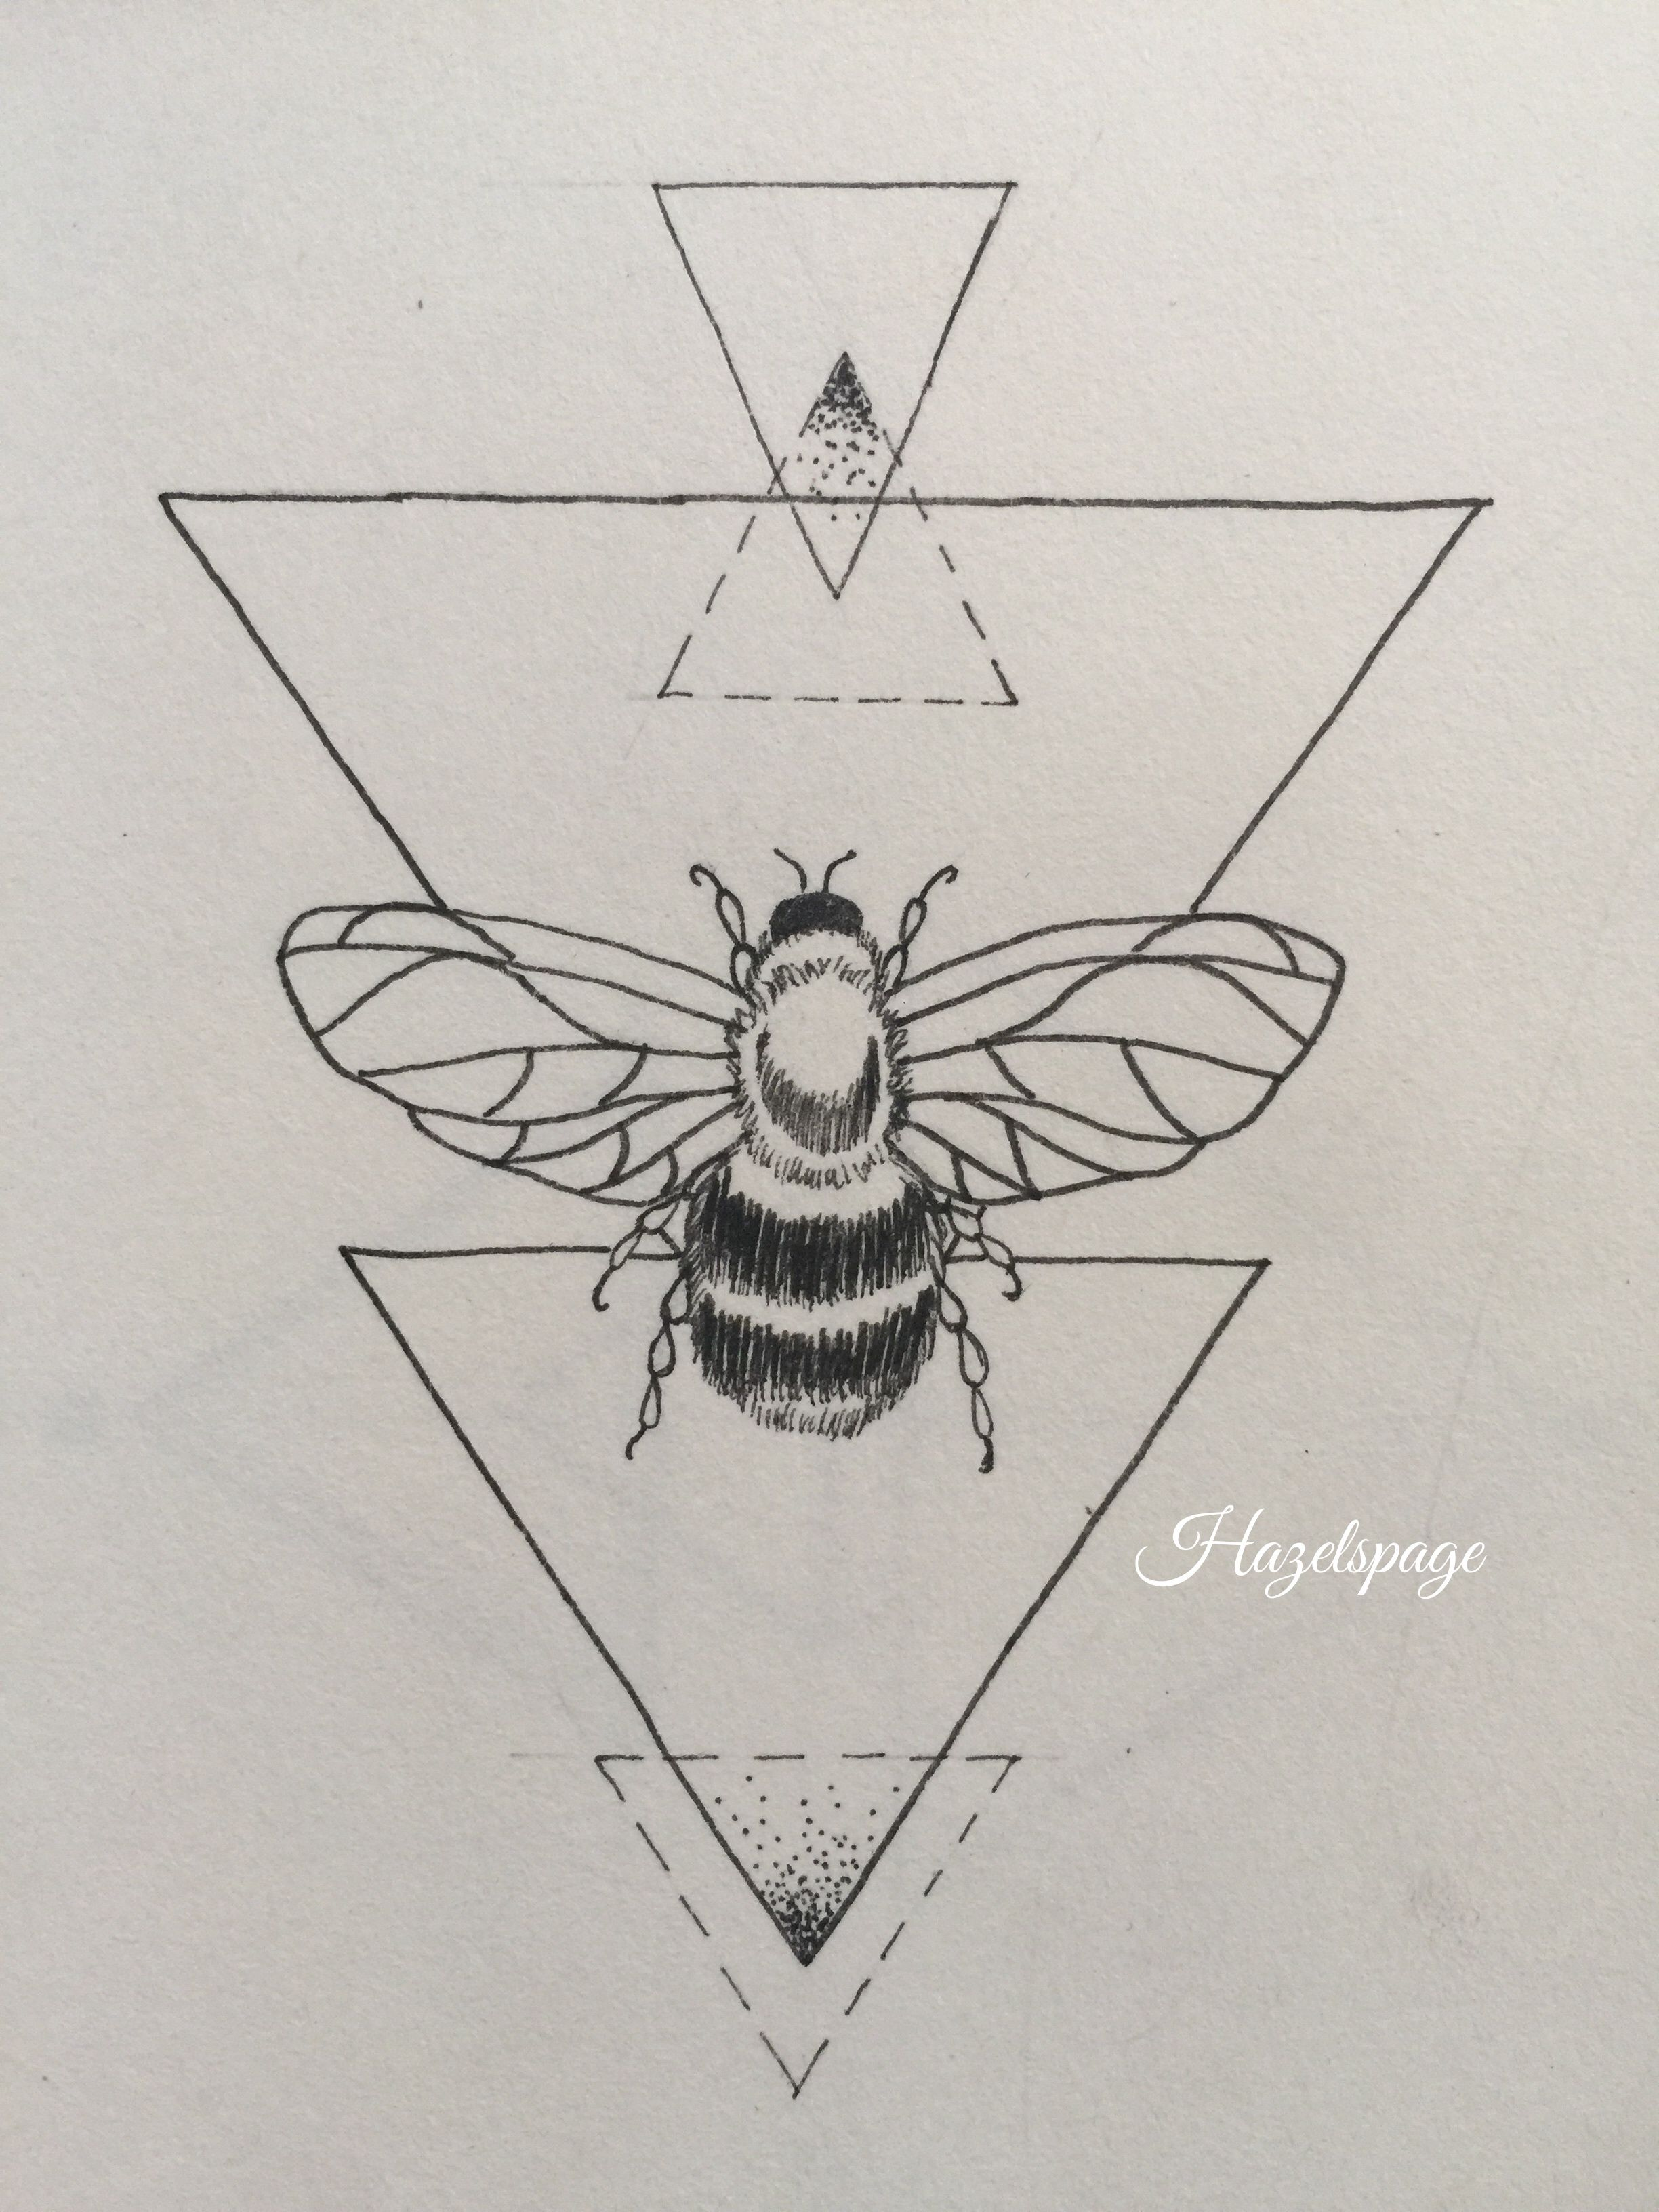 hight resolution of geometric bee illustration bee illustration bee art insects bees bugs jpg 2448x3264 housefly diagram home bee